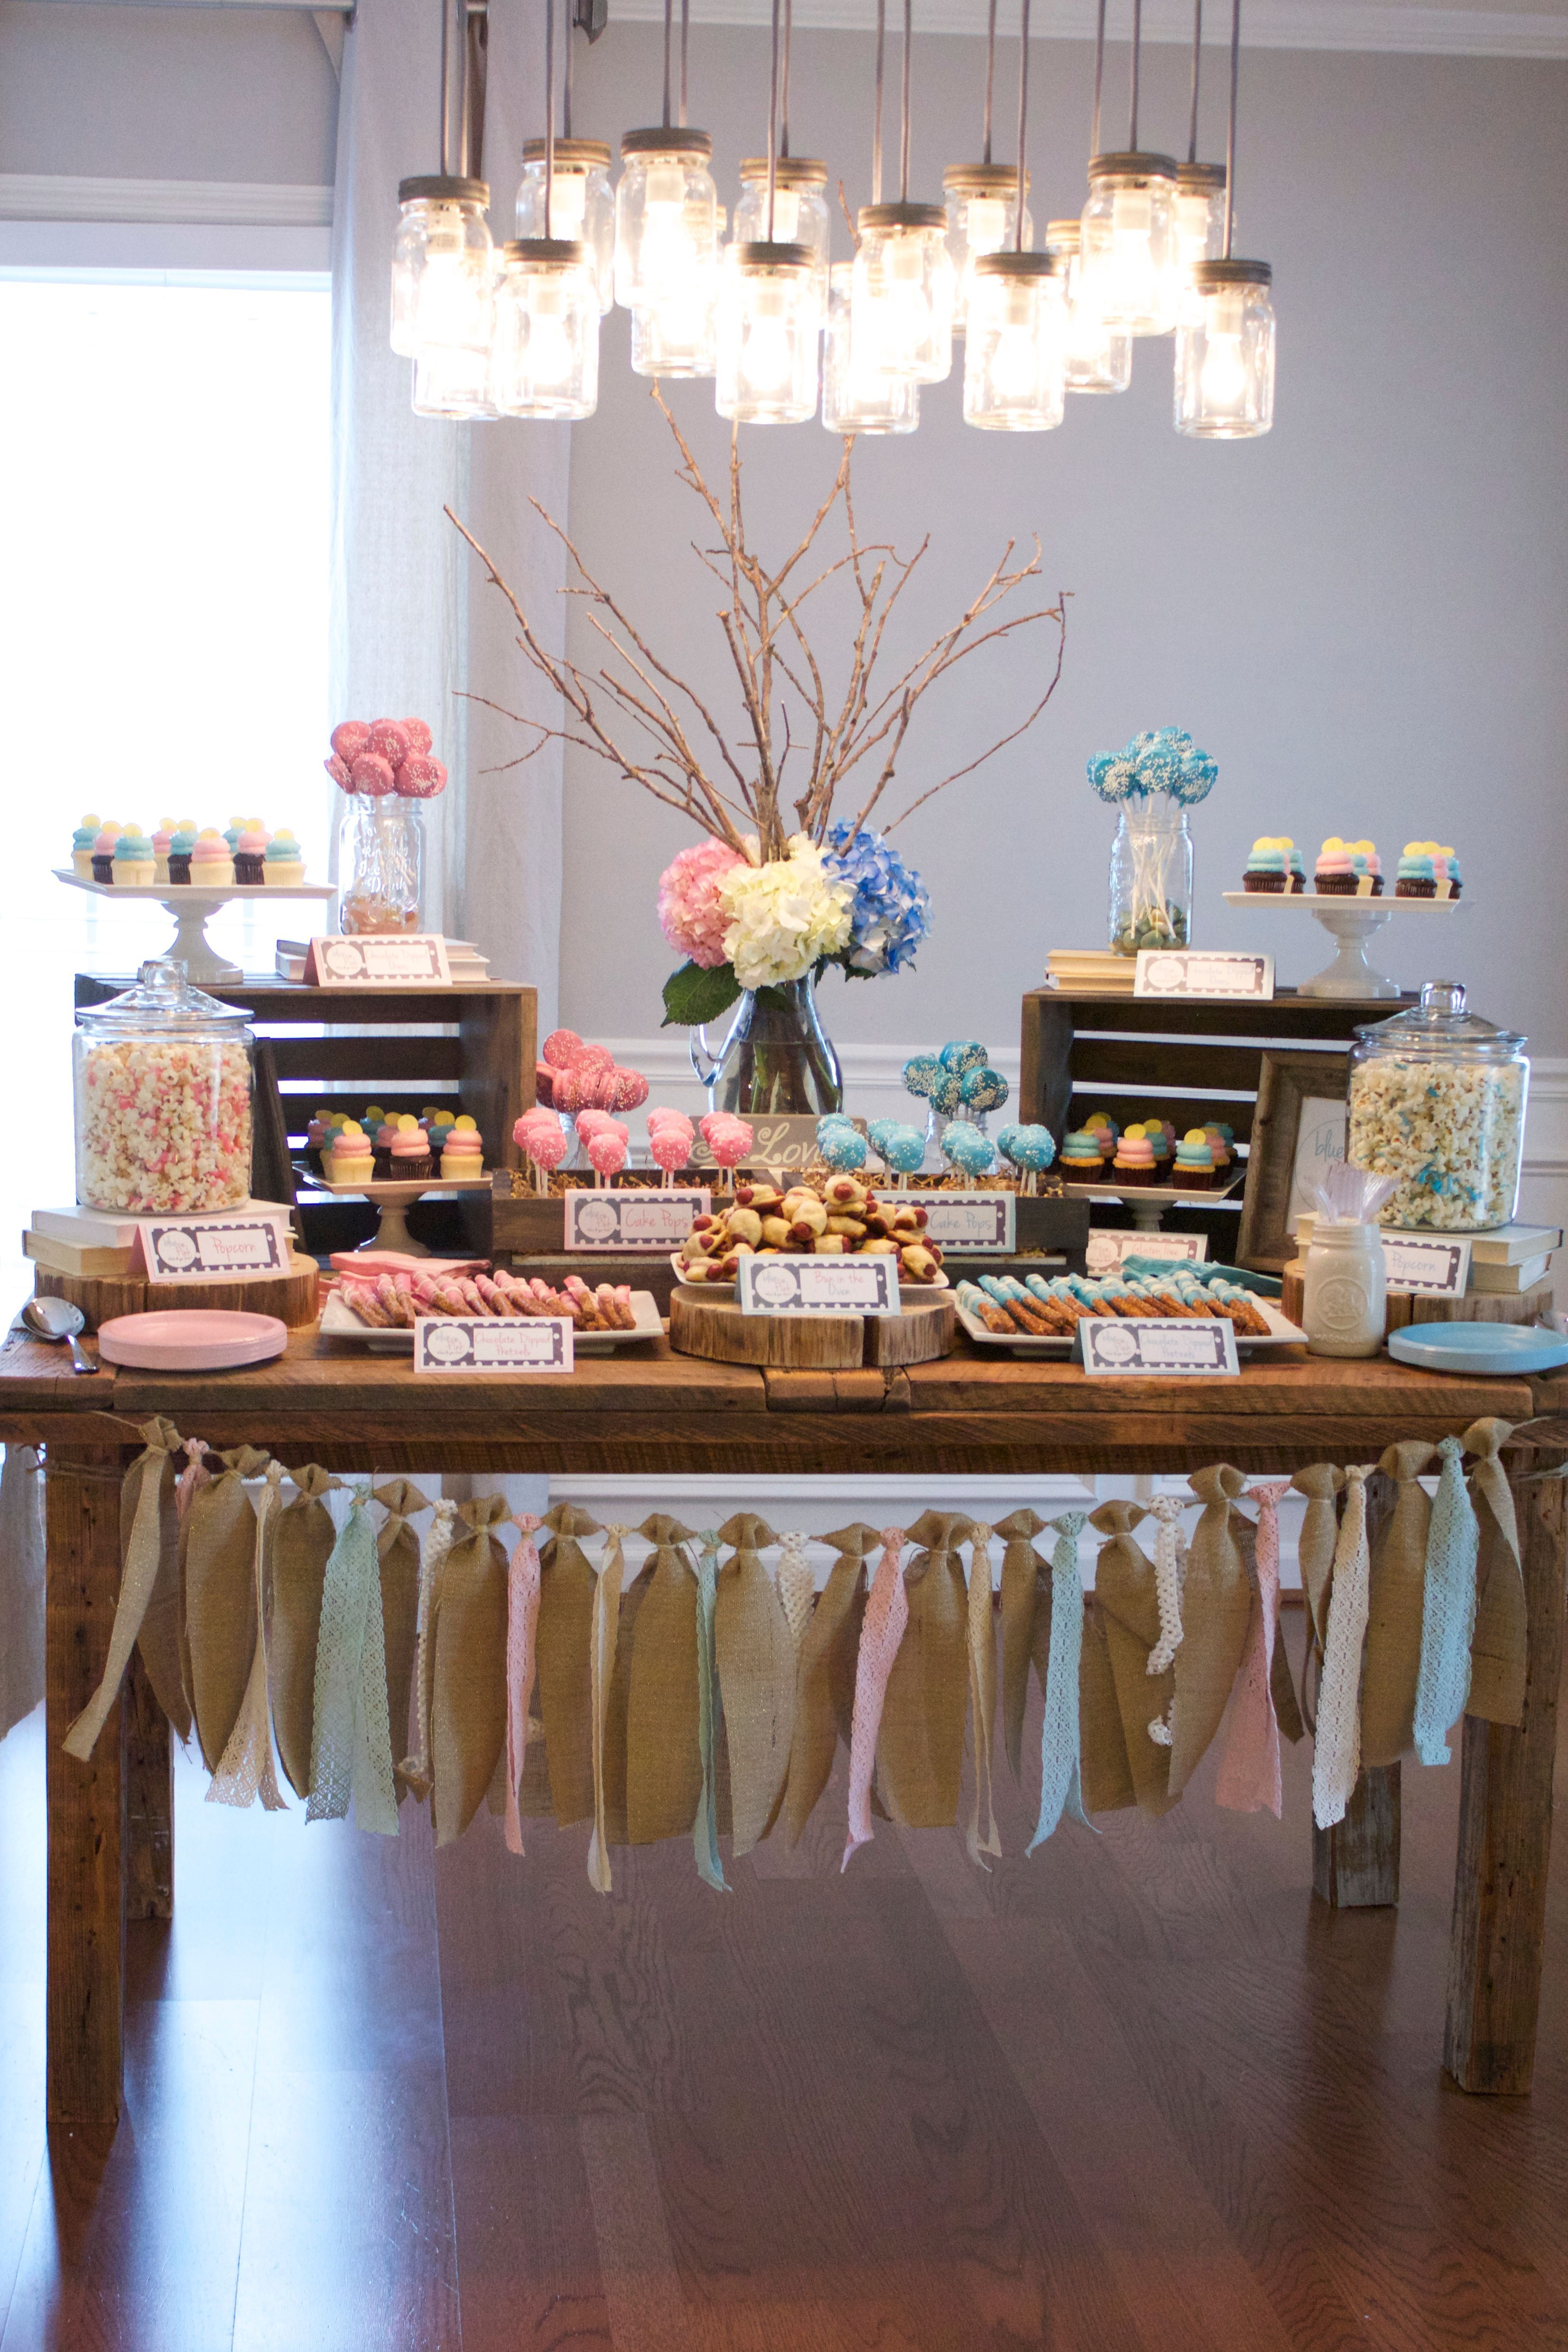 Blue Or Pink What Do You Think Gender Reveal Party Sweetwood Creative Co Atlanta Wedding Planner Upscale Event Design Gender Reveal Decorations Baby Reveal Party Gender Reveal Shower